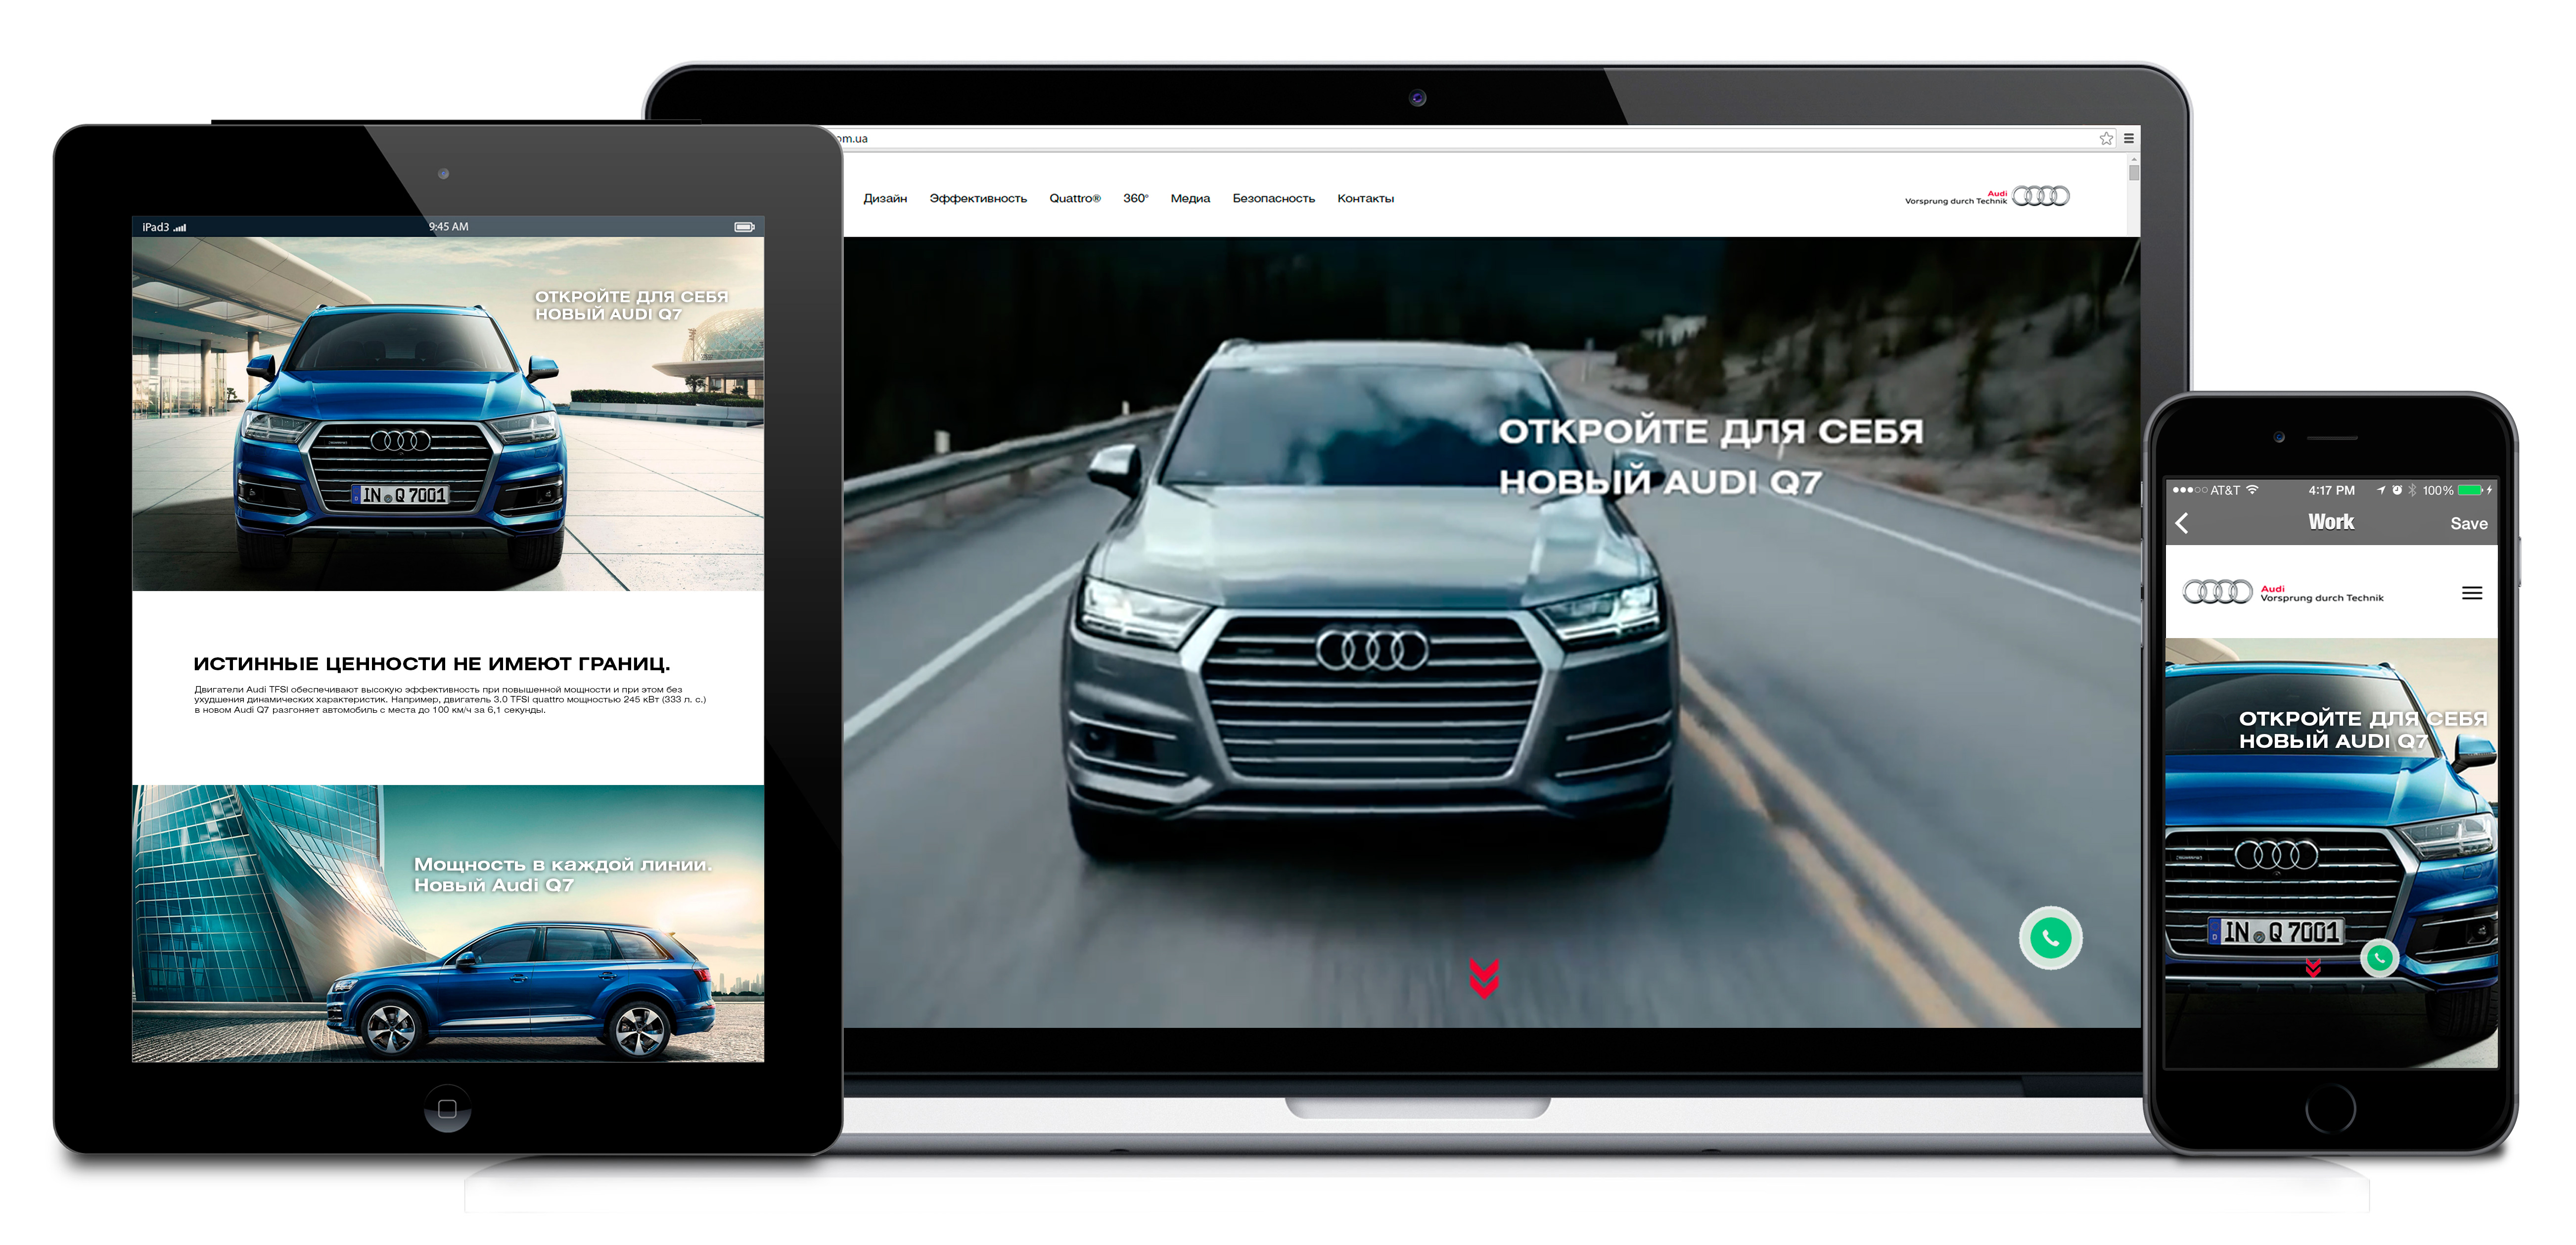 SEO website promotion Audi Q7